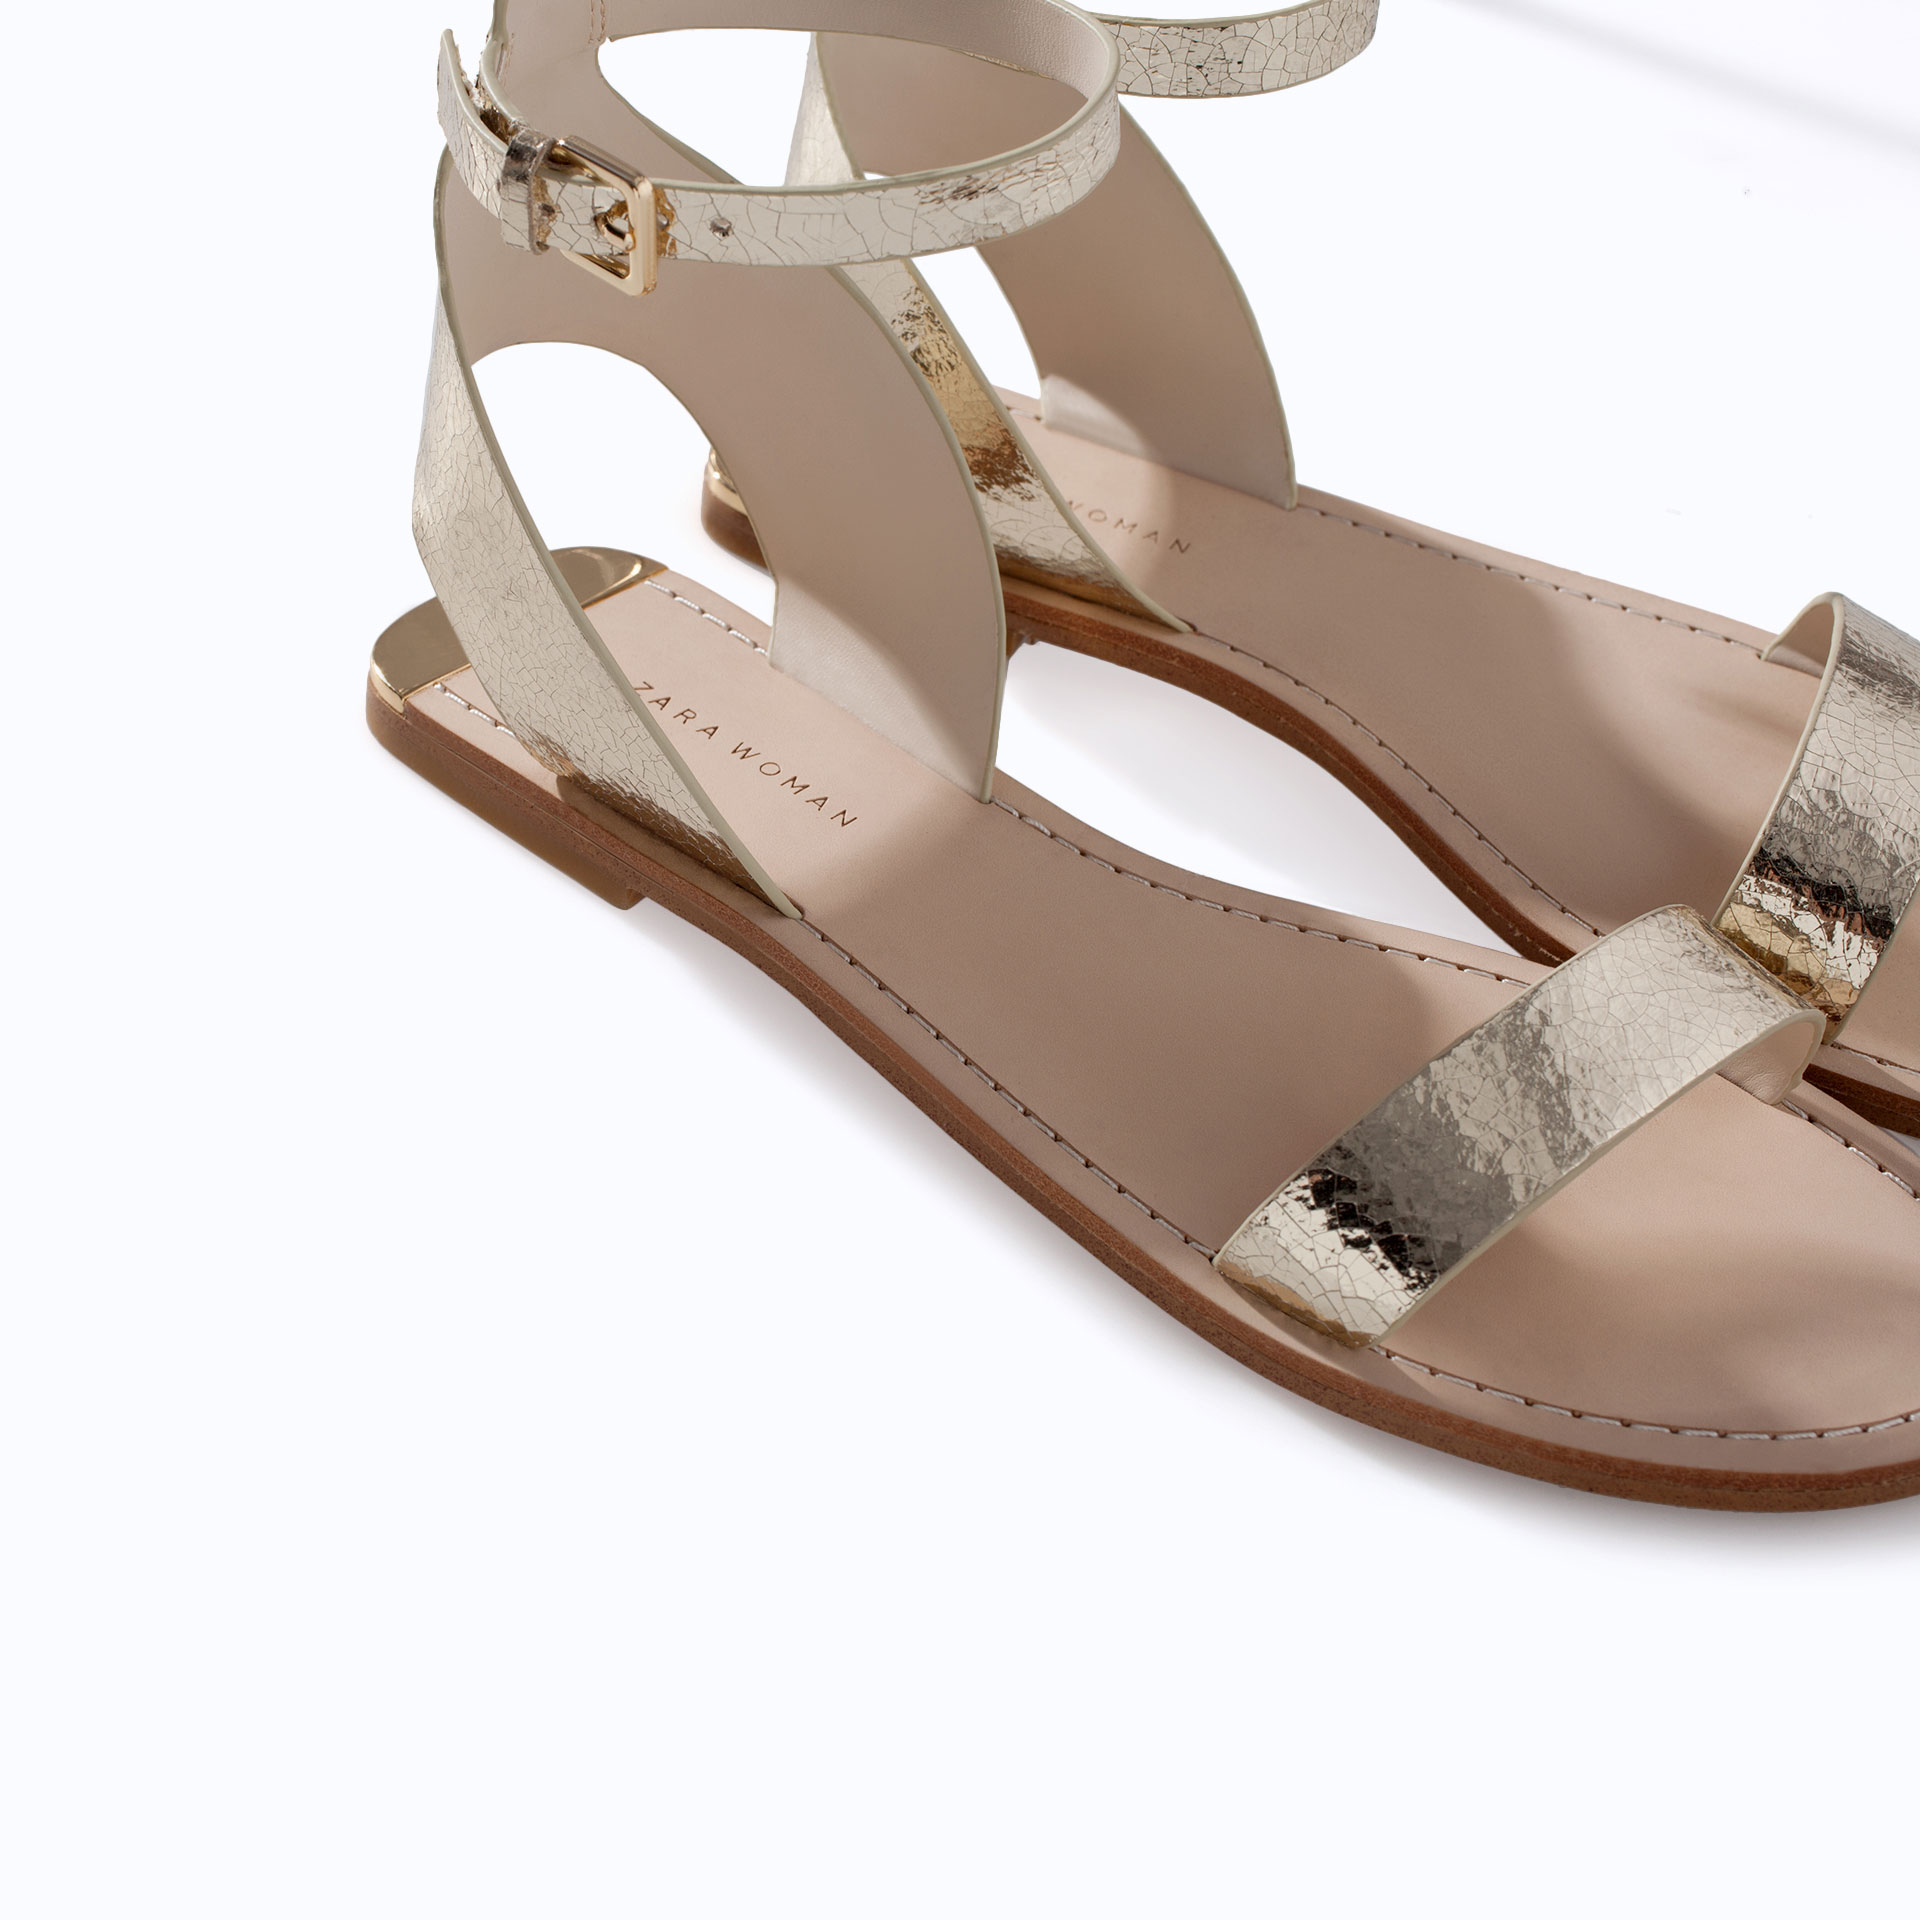 12534ad0f Zara Metallic Leather Sandal with Ankle Strap in Gold